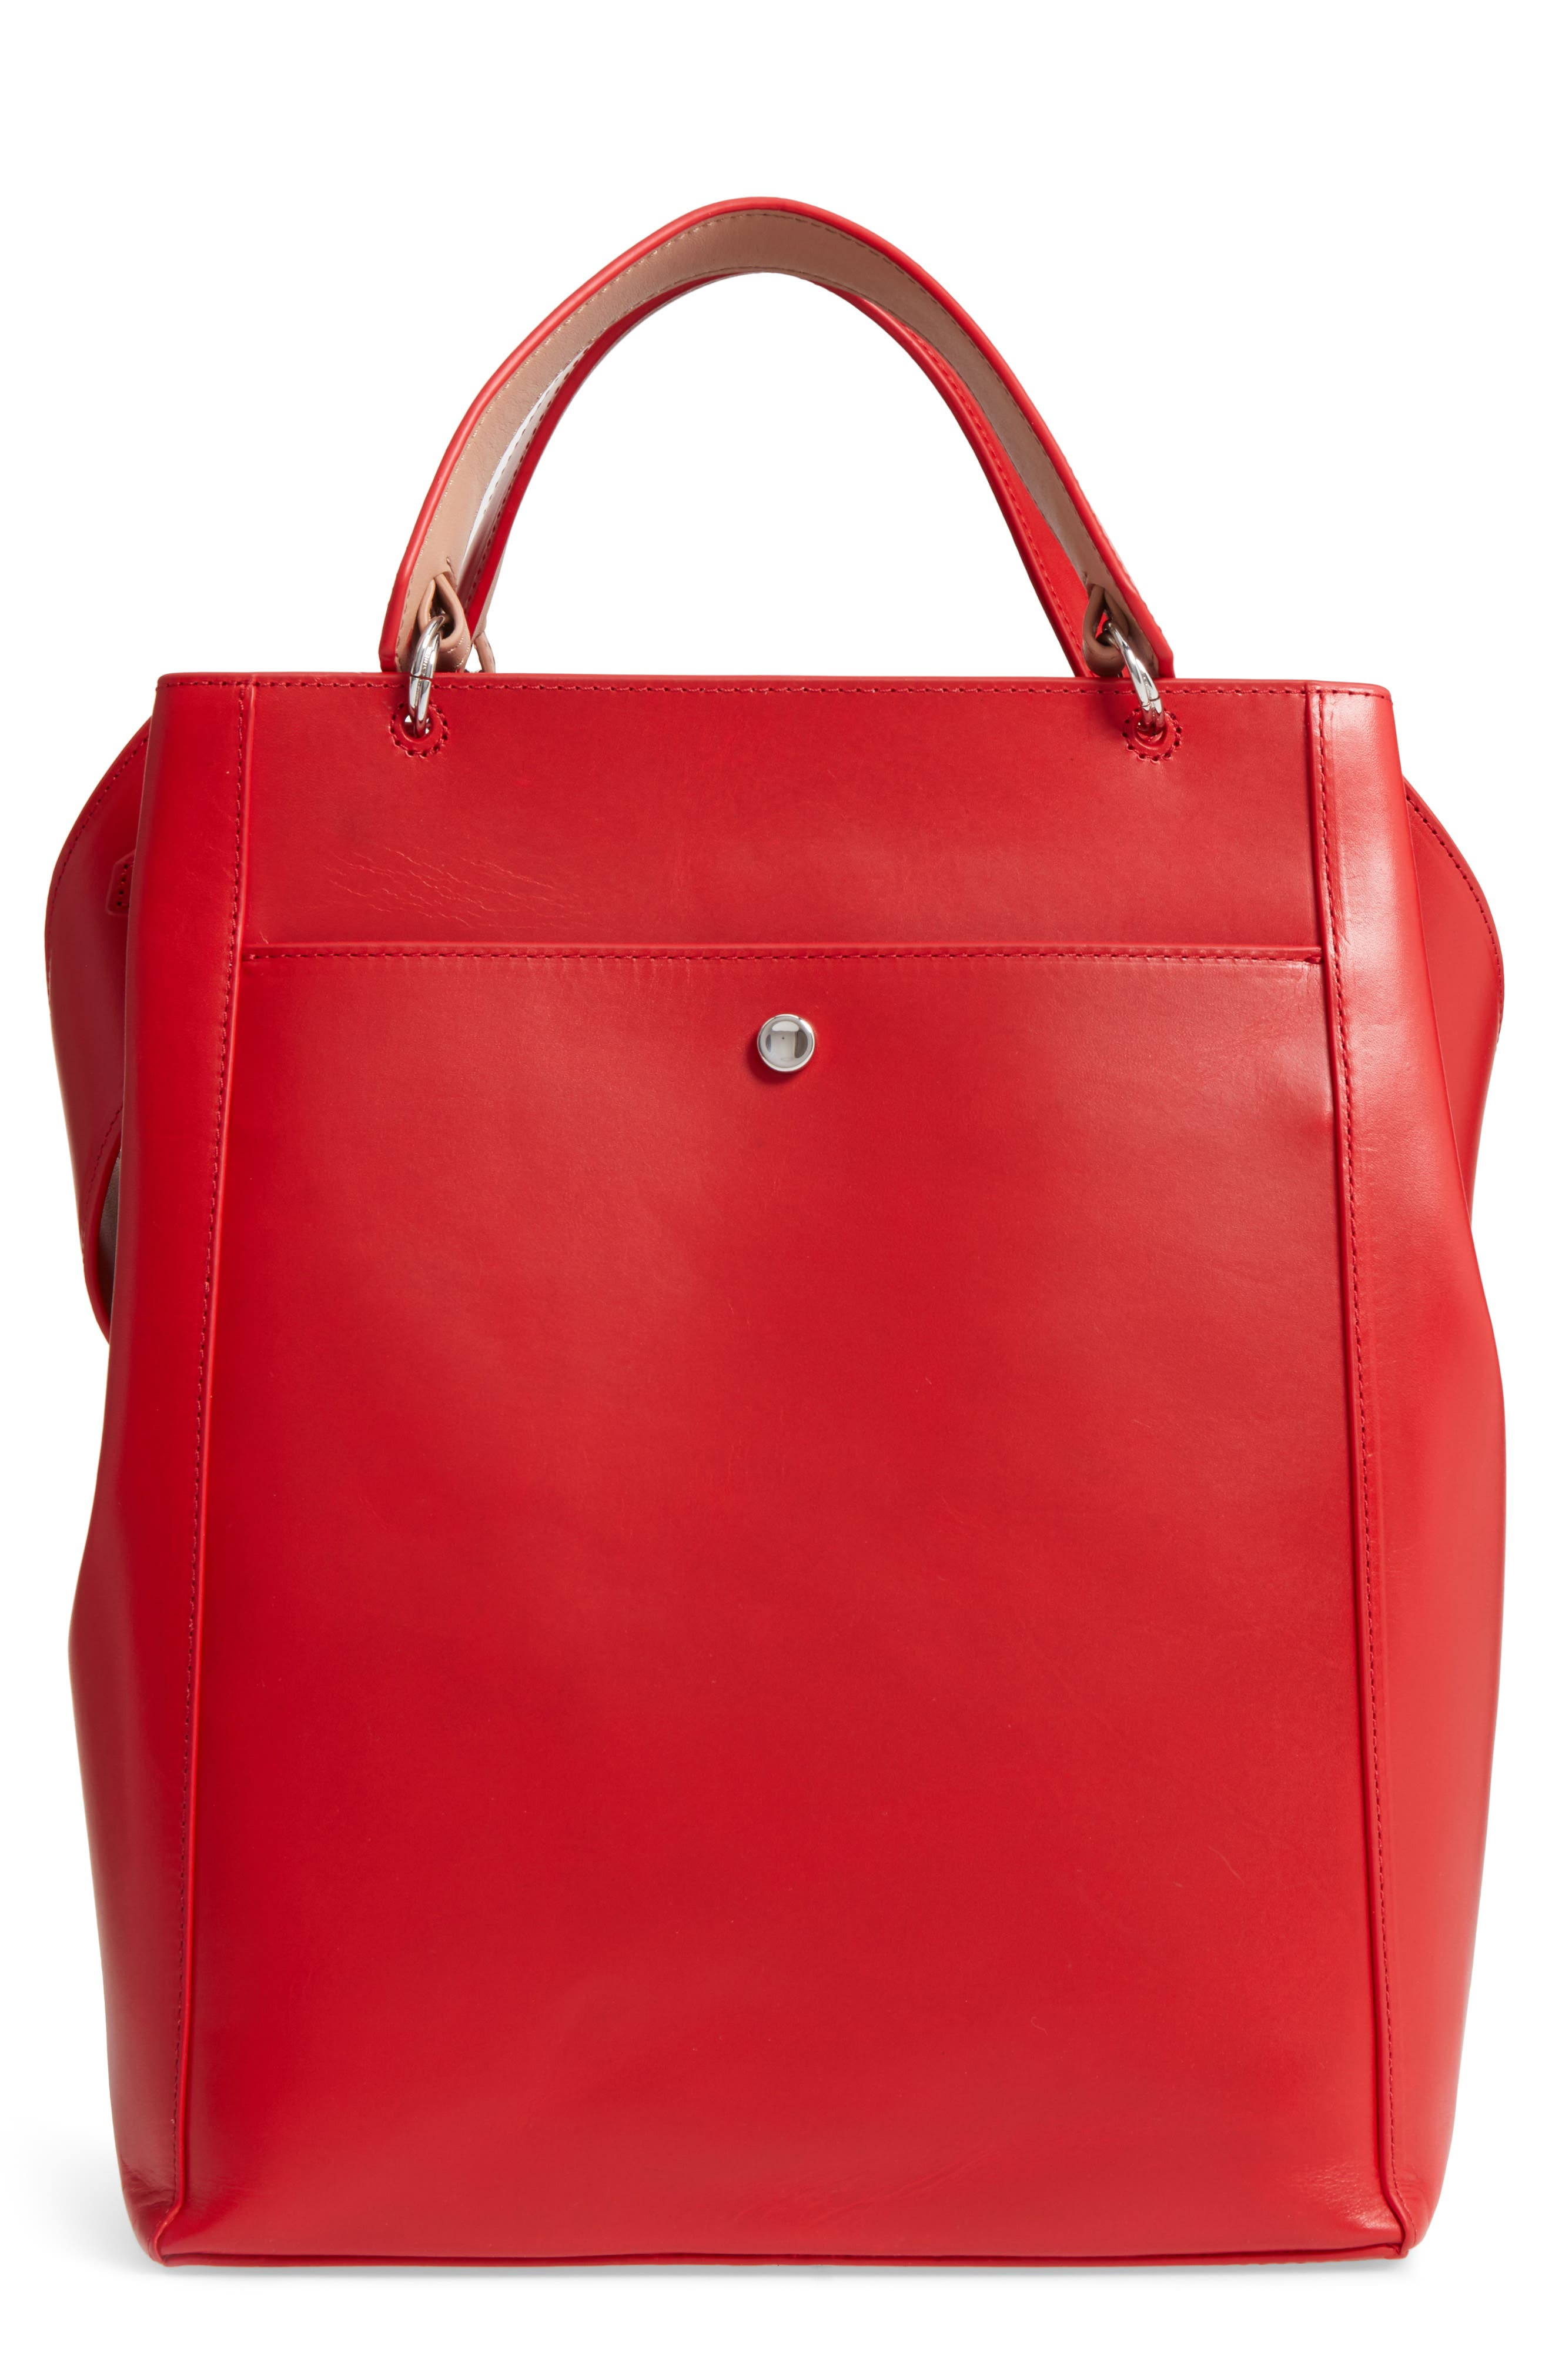 Elizabeth and James Large Eloise Leather Tote